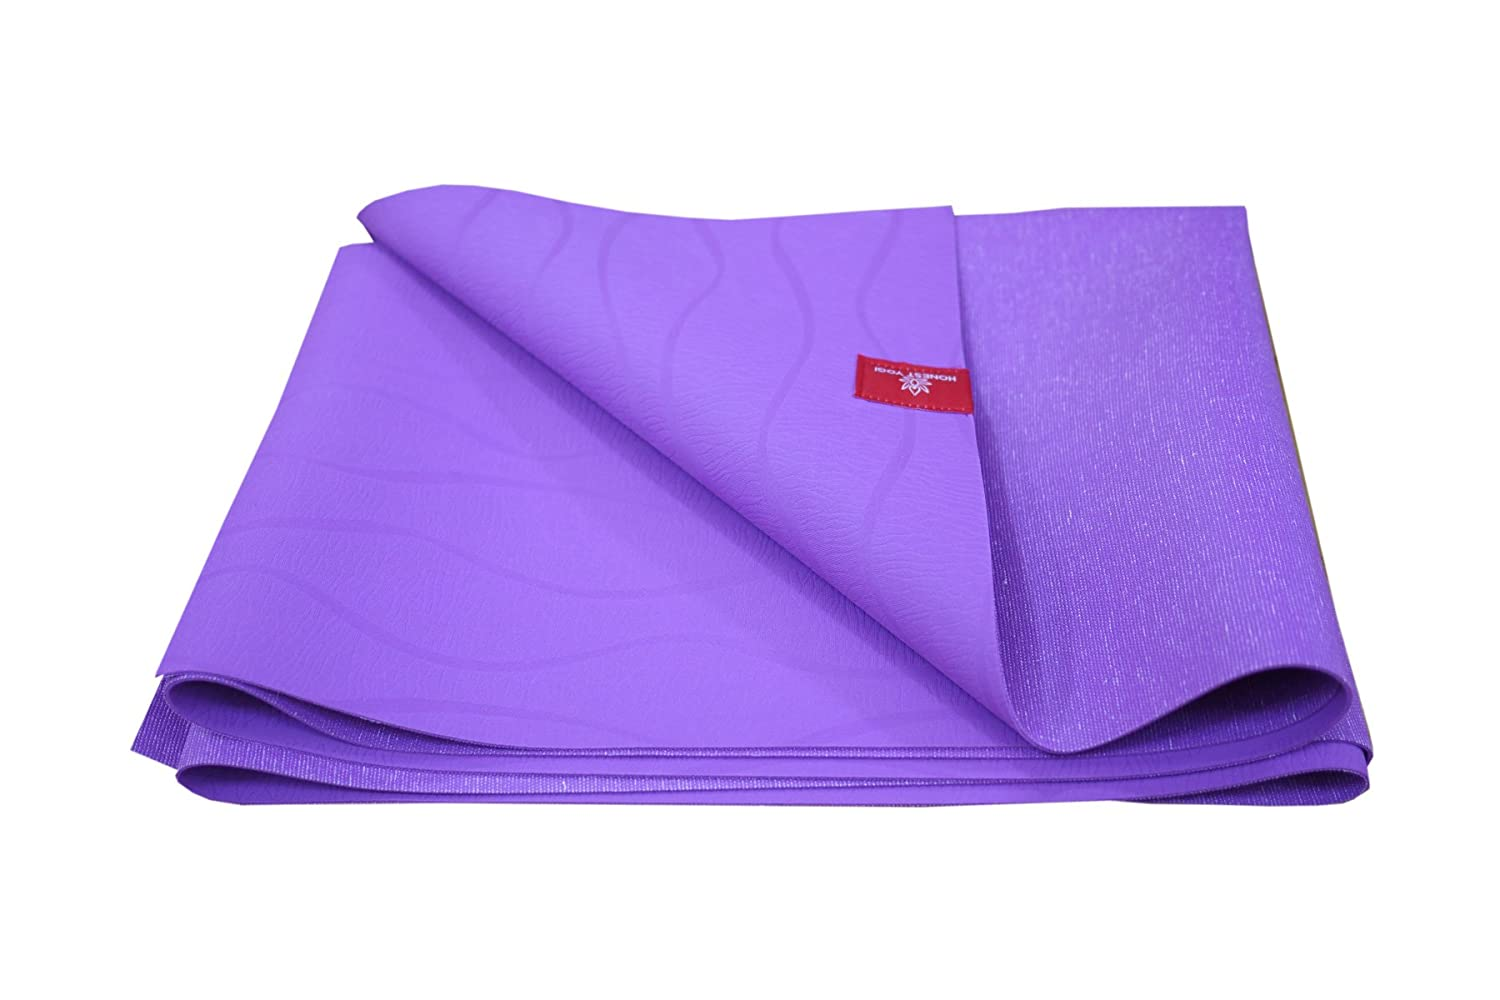 Honest Yogi Travel Yoga Mat, Thin, Light Foldable, Made of 100 Natural Tree Rubber, Double Sided Non-Slip Surface, Available in Purple Gray